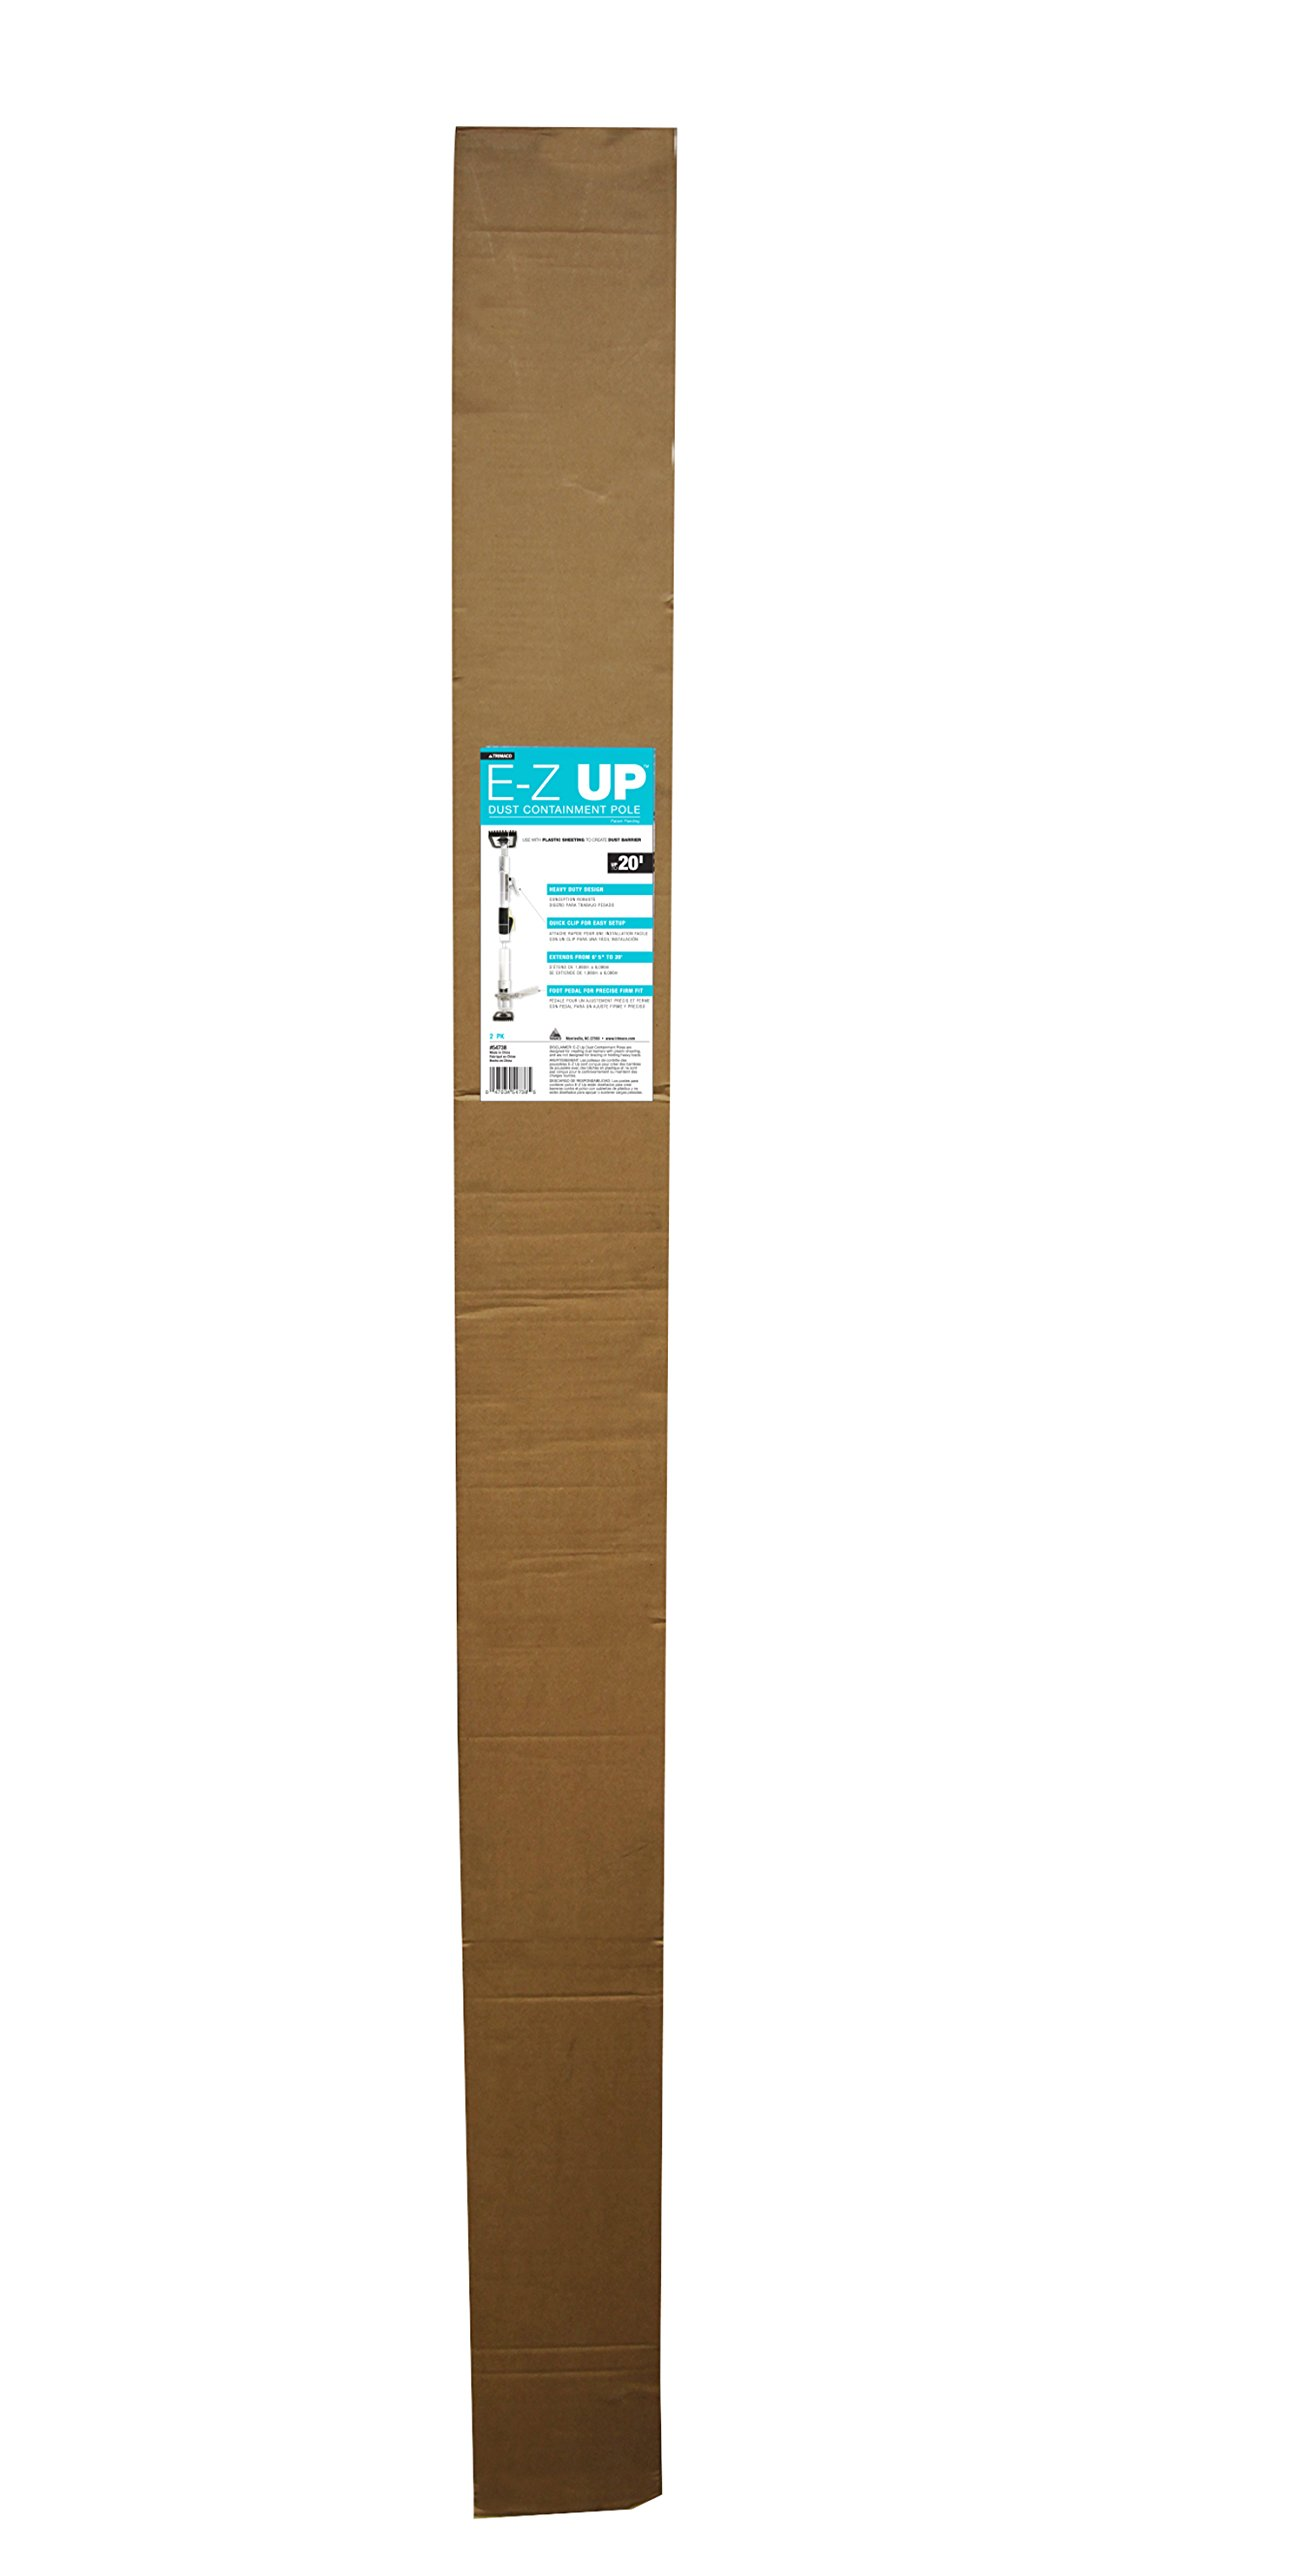 E-Z Up 54738 Dust Containment Pole (2 Pack), 20' by E-Z UP (Image #2)